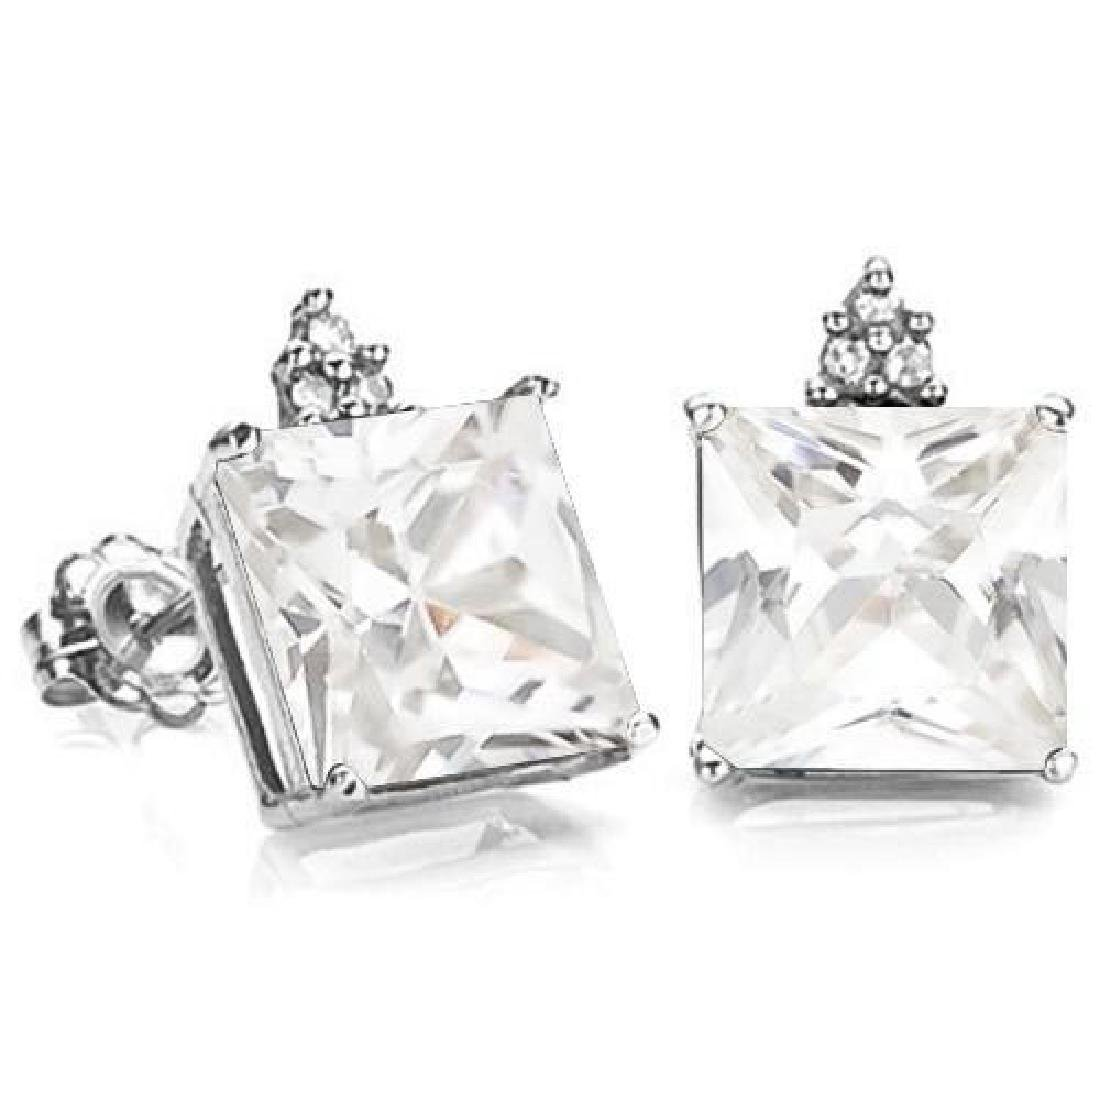 3.7 CARAT CZ 10K SOLID WHITE GOLD SQUARE SHAPE EARRING